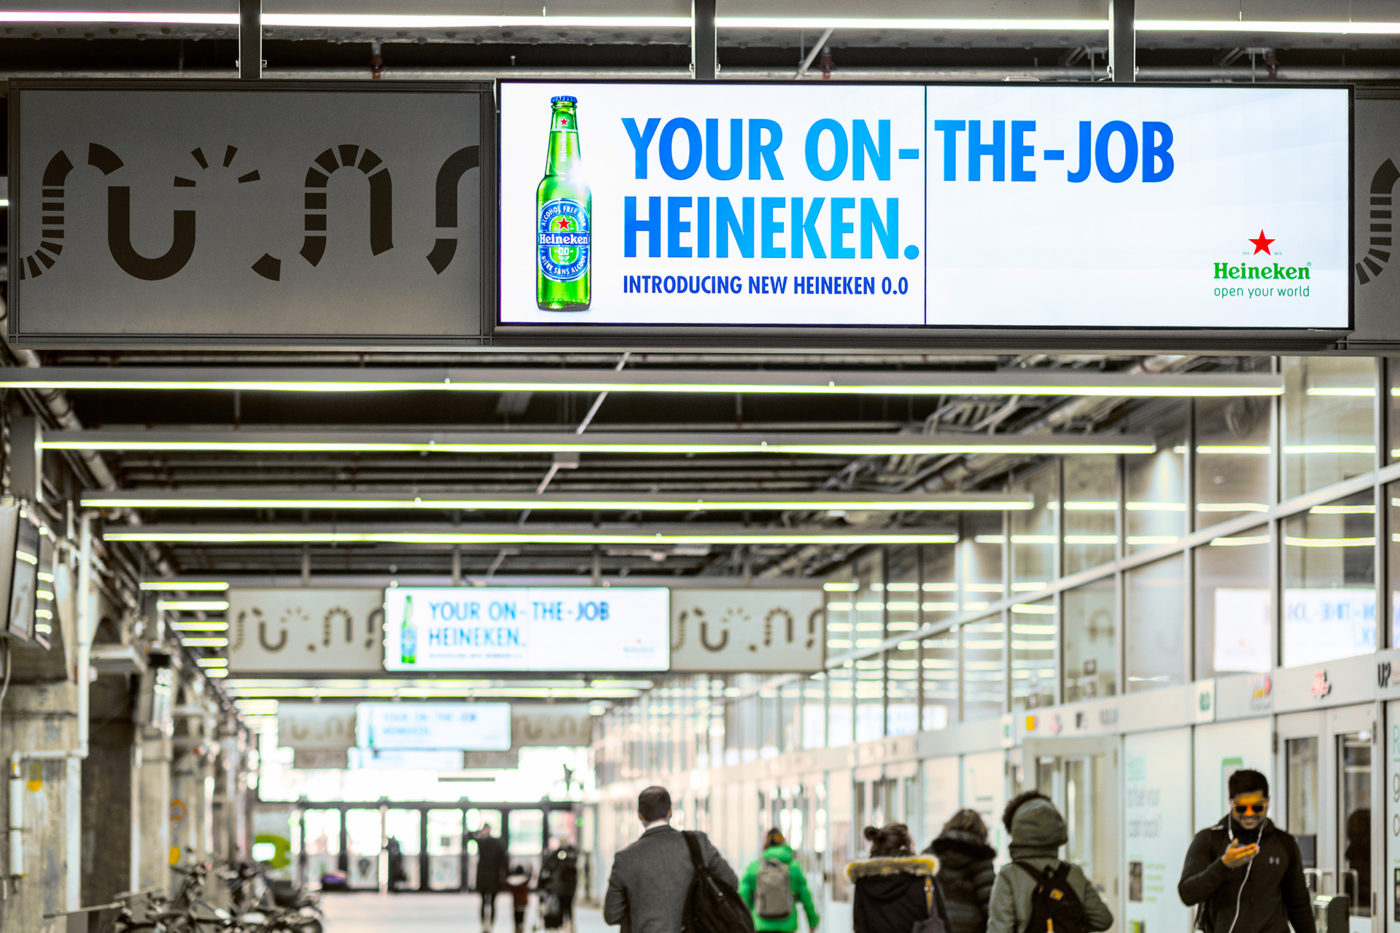 Heineken - 0.0 - Union Station - York St Teamway - Digital Screen Network (Toronto, Ontario)